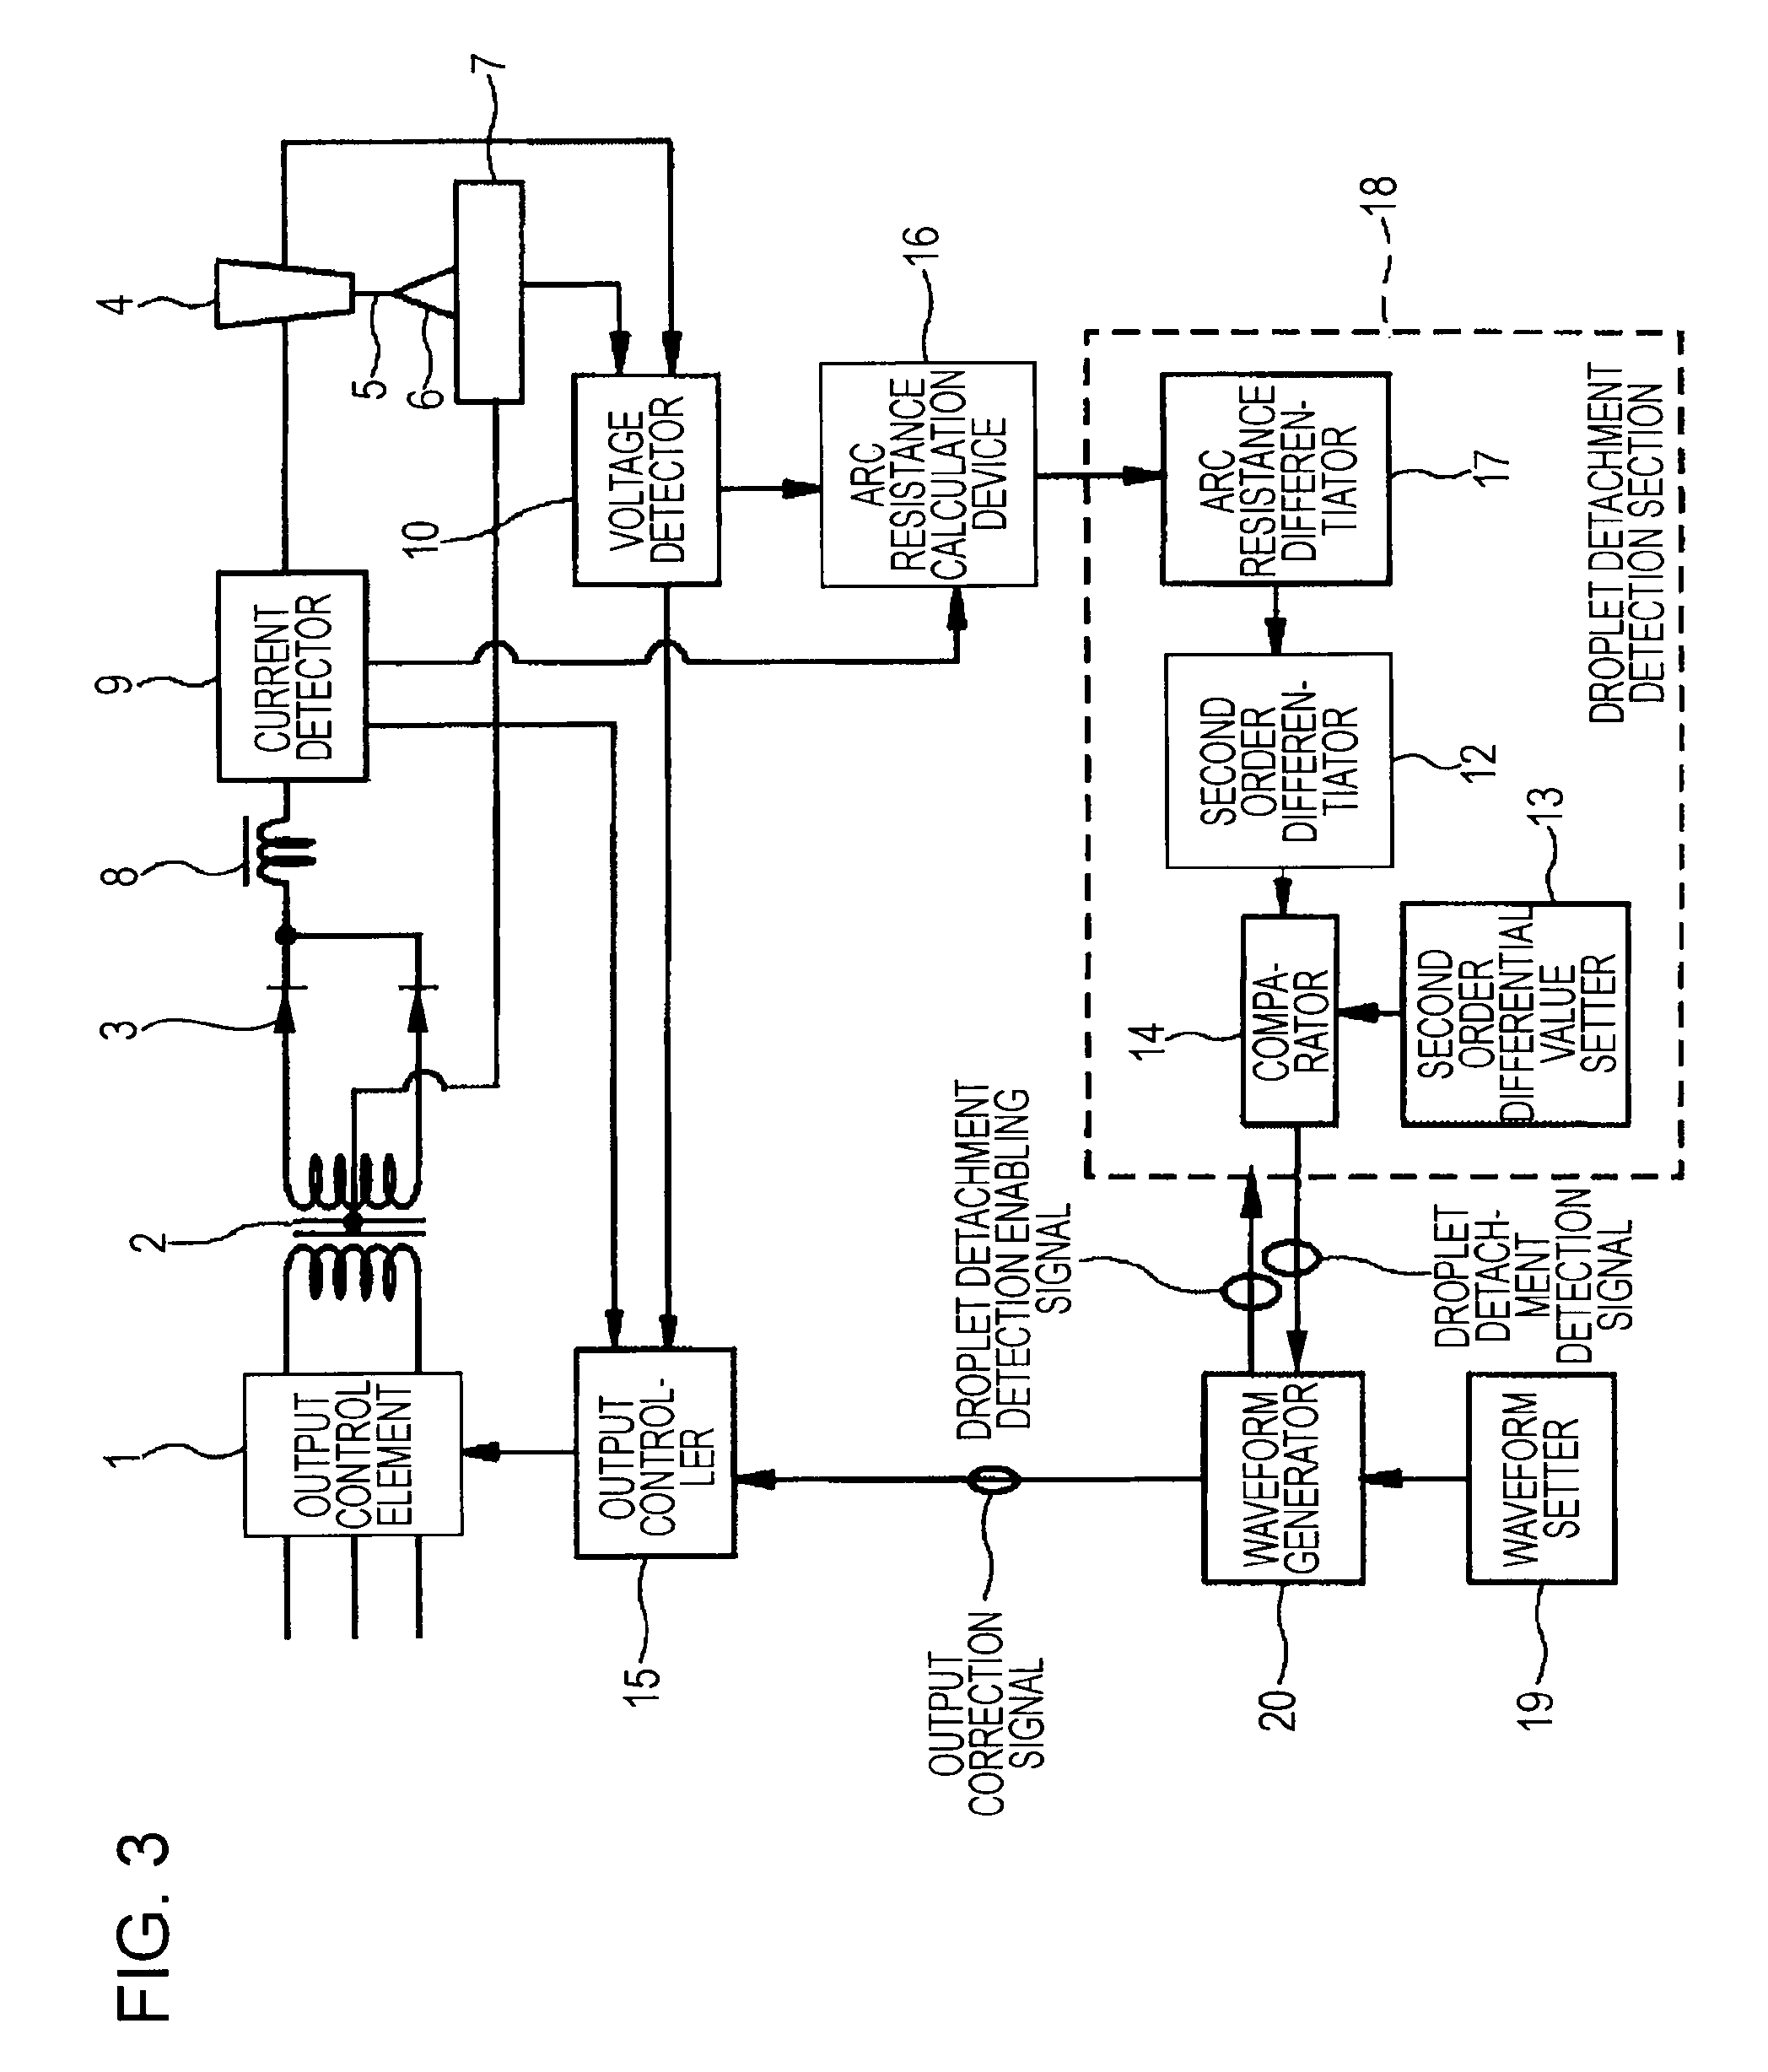 Patent Us20080237196 Consumable Electrode Type Gas Shielded Circuit Diagram Resistance Calculator Drawing